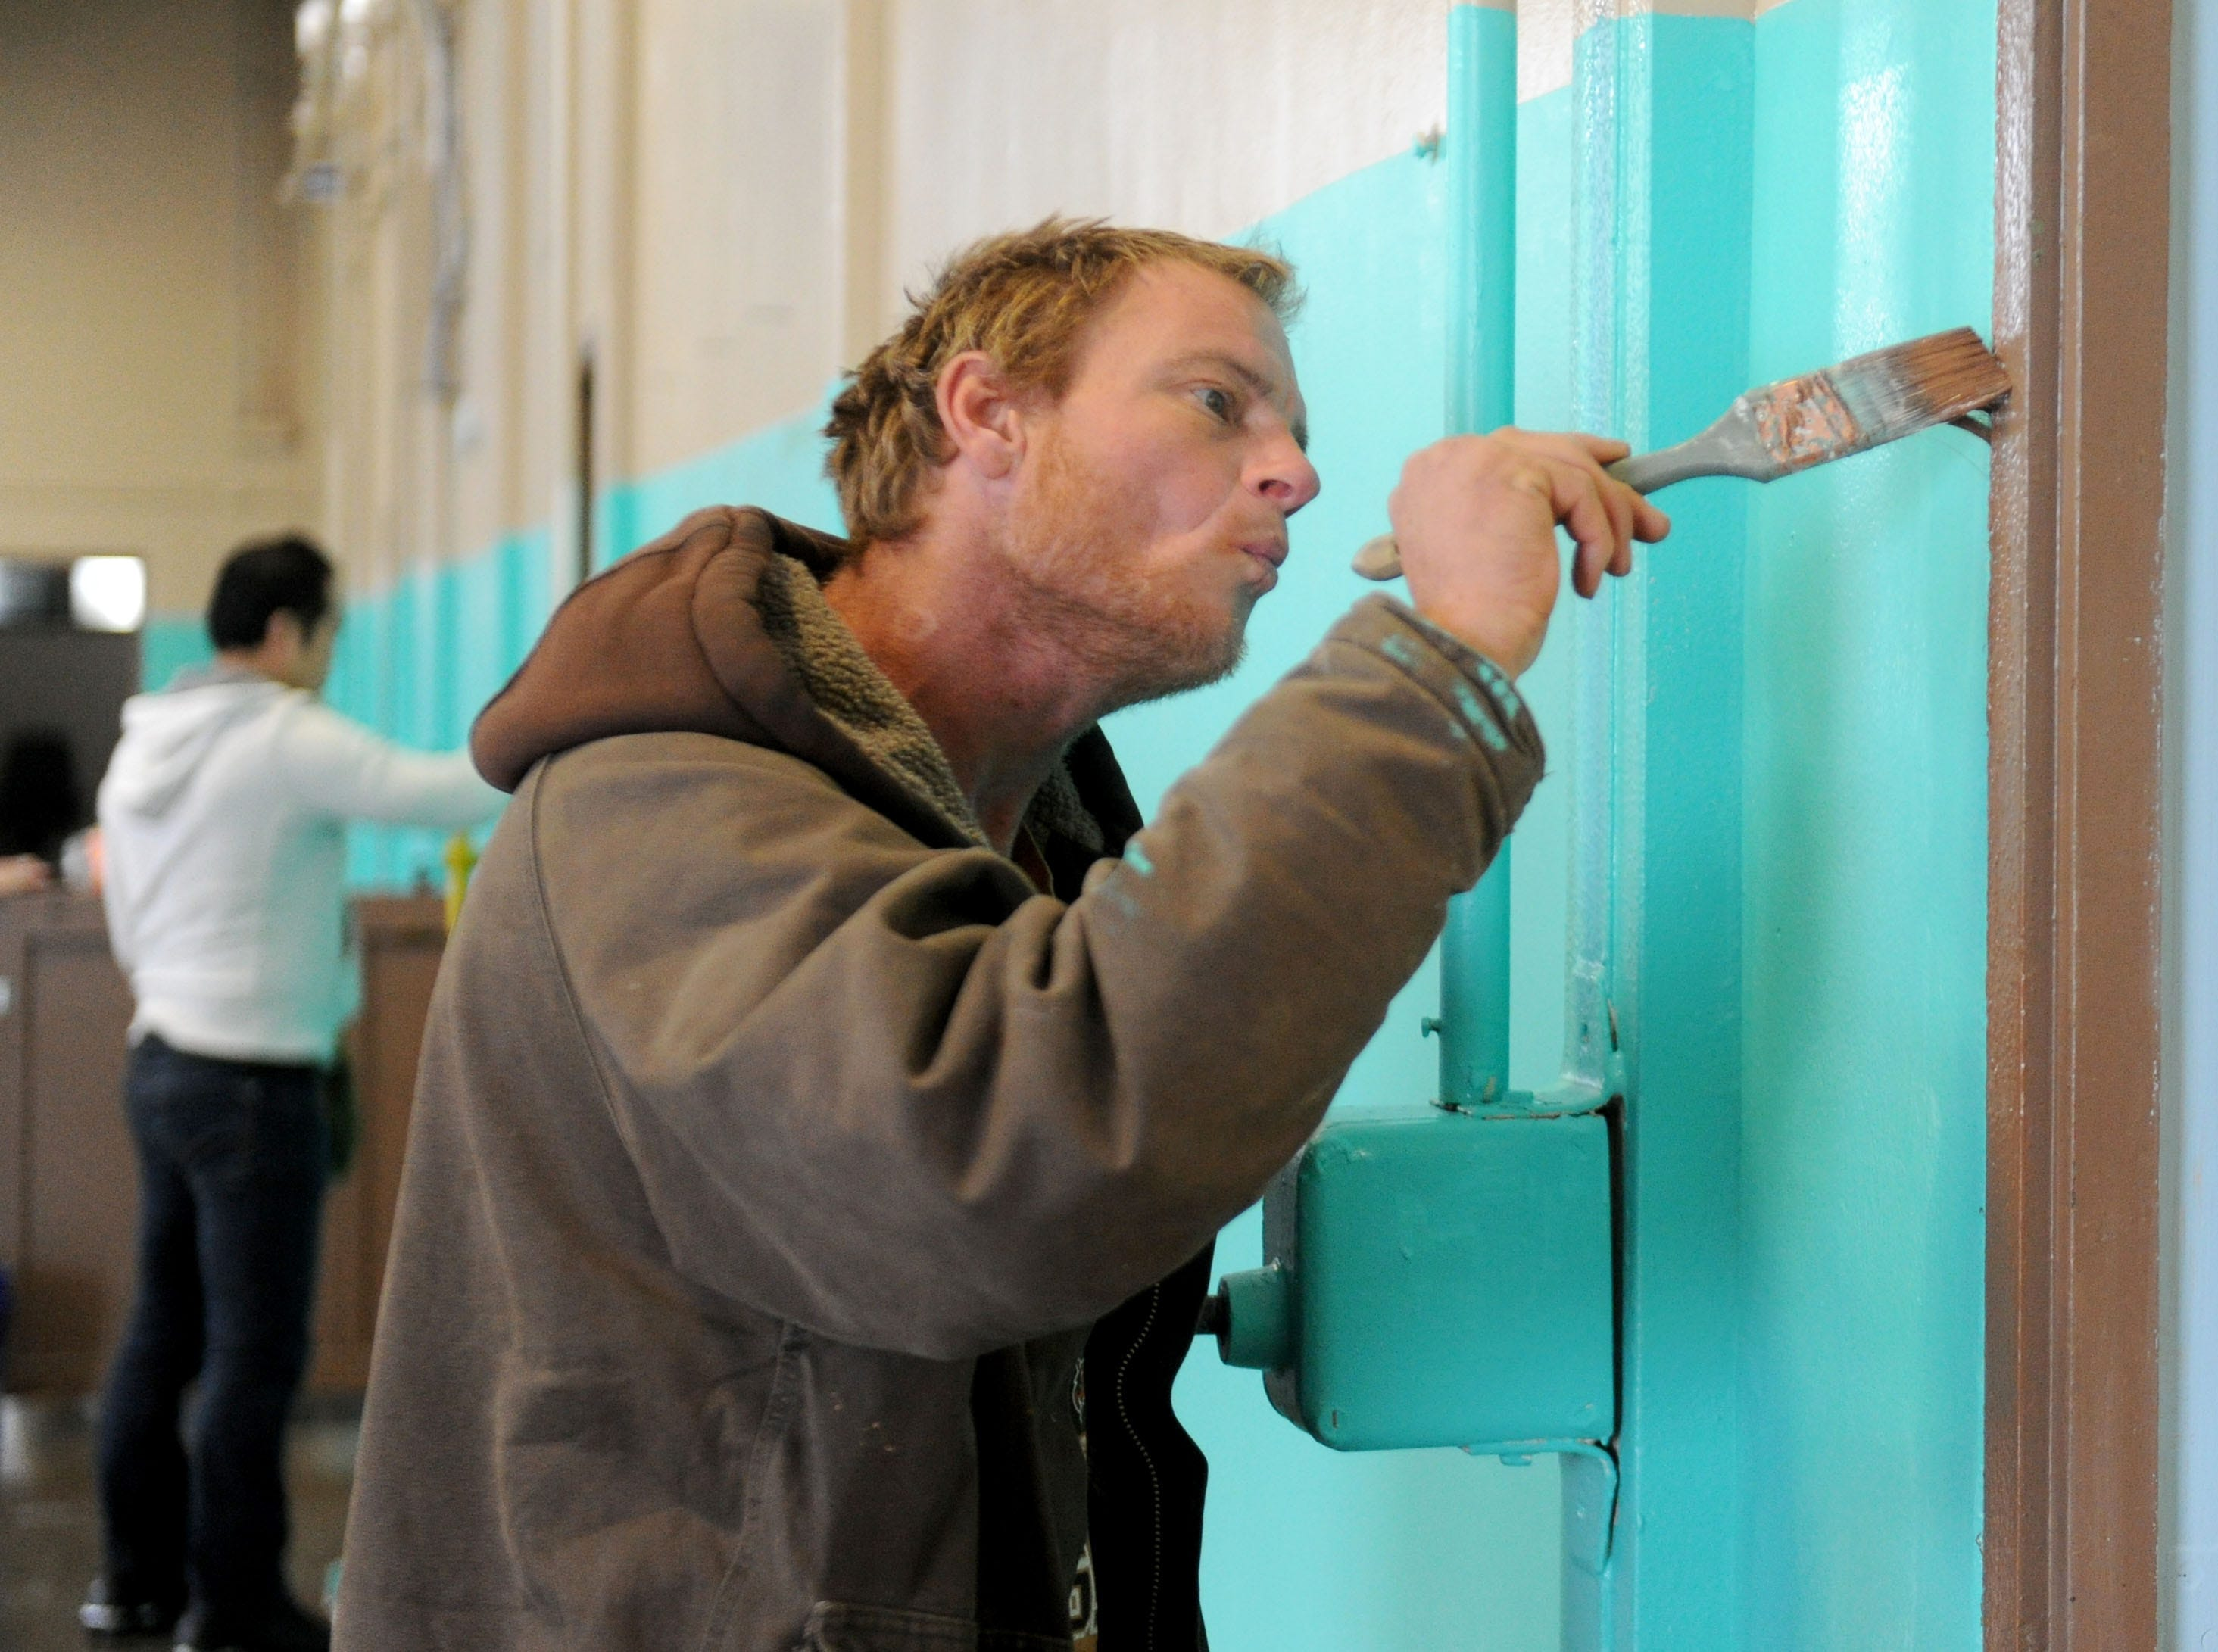 Aron Varney helps paint the homeless shelter in Oxnard Saturday morning. The 24-hour shelter at the National Guard Armory hasn't opened yet but the doors were opened temporarily Saturday night because of the rain.